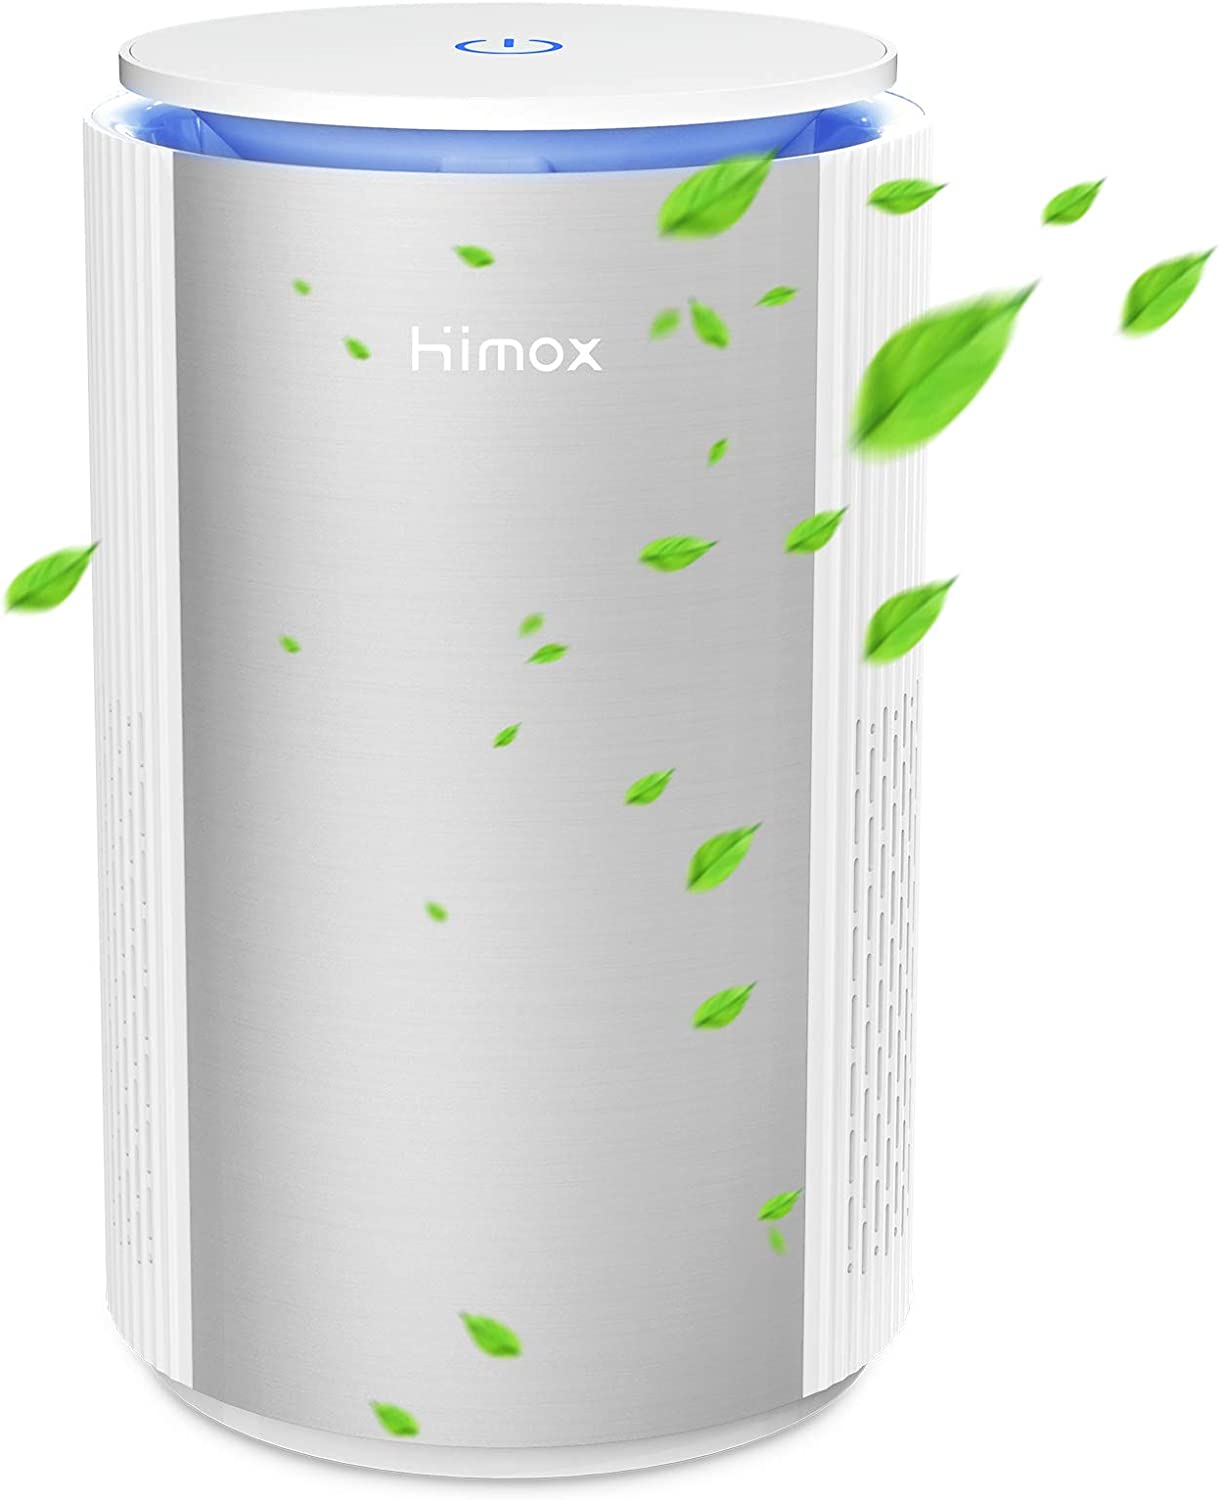 HIMOX Air Purifier Small Room for Bacteria, Smoke, Allergens, Pets Dander, Odor, 20db, Ture HEPA Filter Desktop Air Purifiers with Night Light for Home, Bedroom, Office, USB Air Cleaner for Christmas H-09